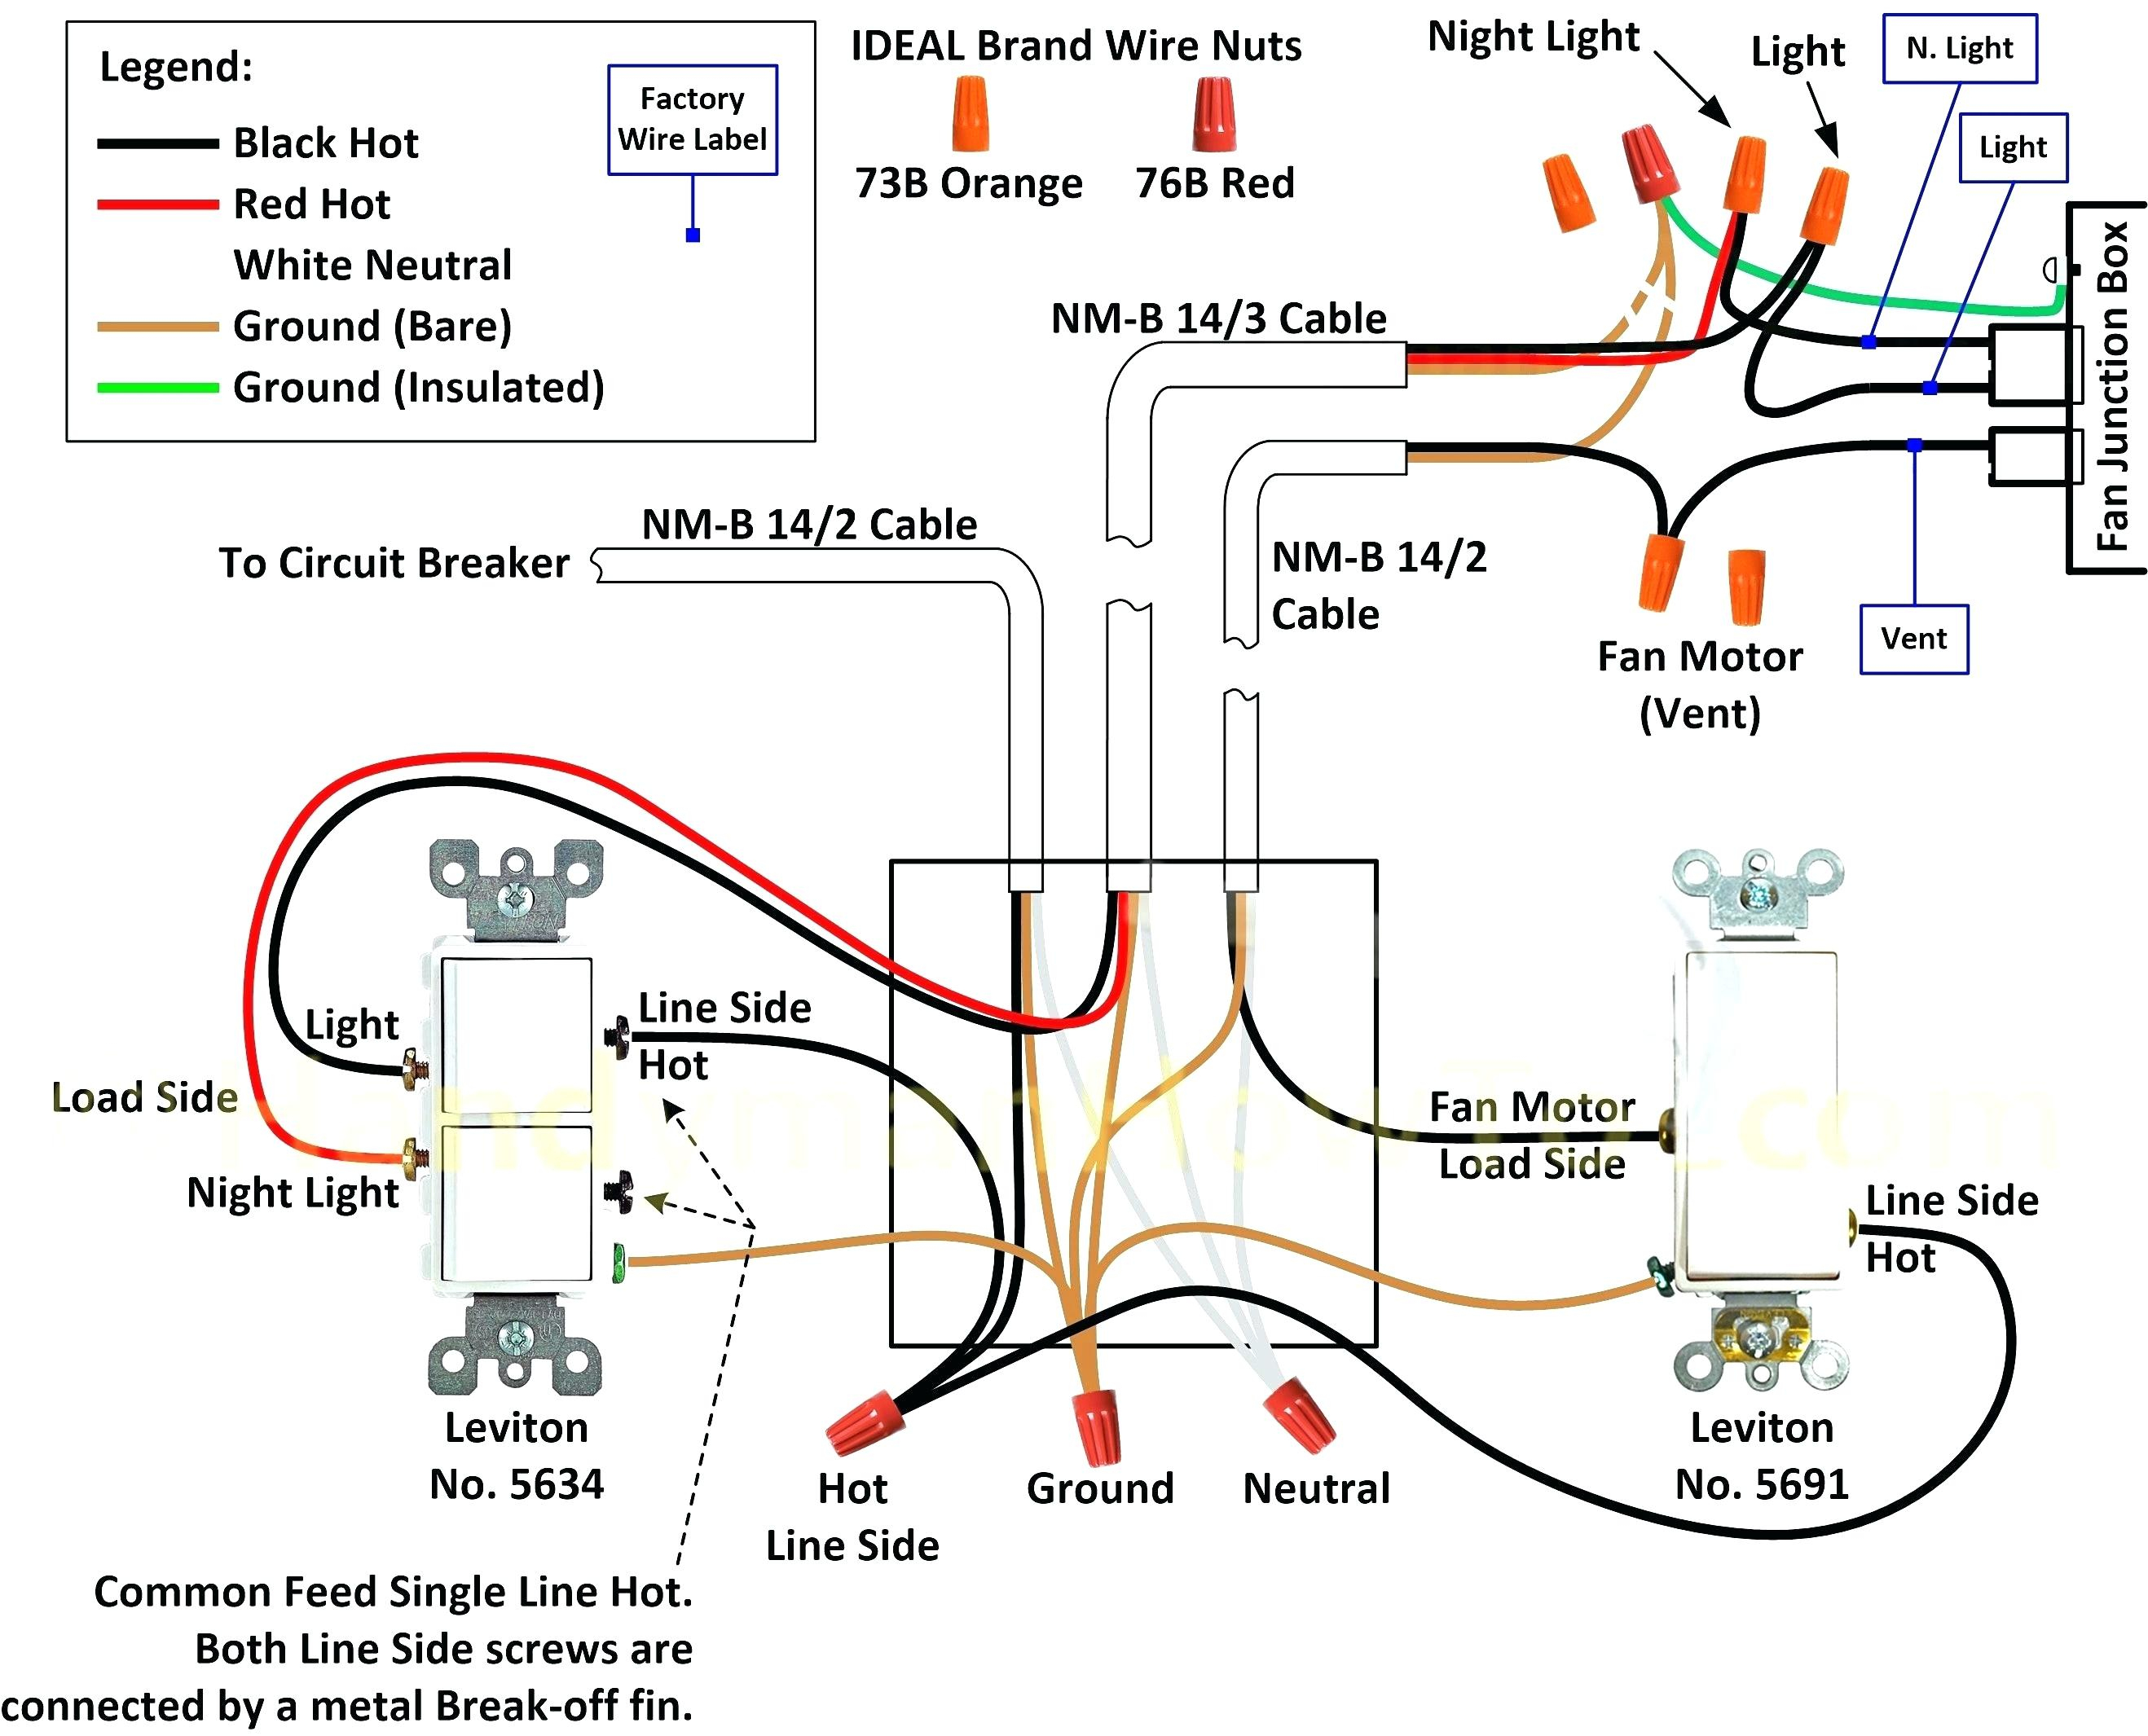 Home Motion Light Switch Light Wiring Diagram - Data Wiring Diagram - Motion Sensor Wiring Diagram